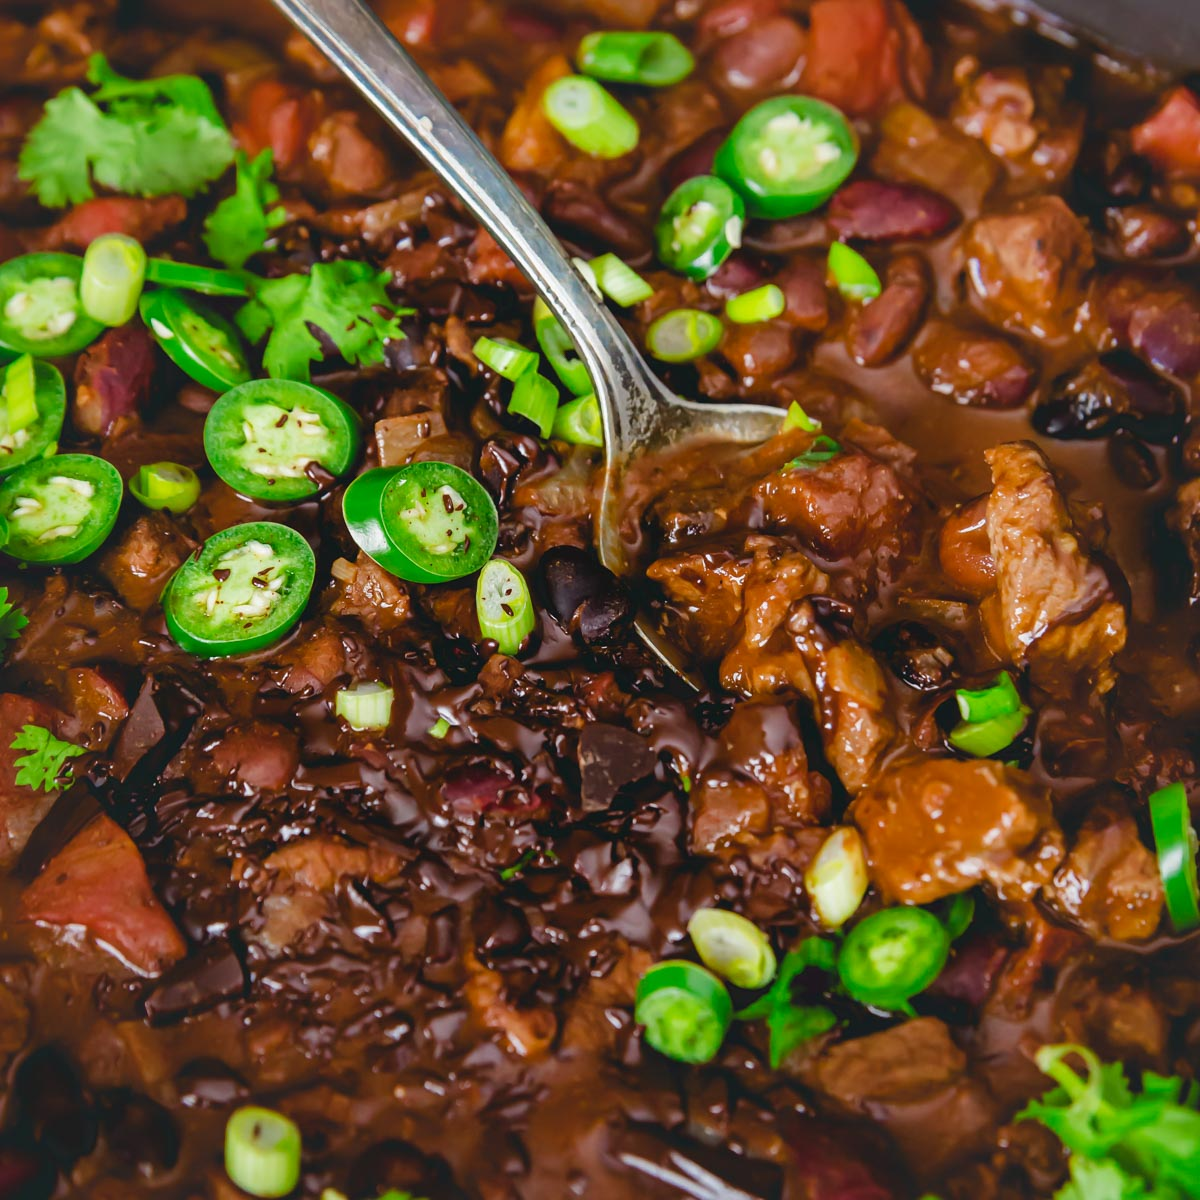 Bittersweet chocolate and cocoa powder add a fun twist to chili in this chocolate lamb chili recipe with a Mexican mole vibe.